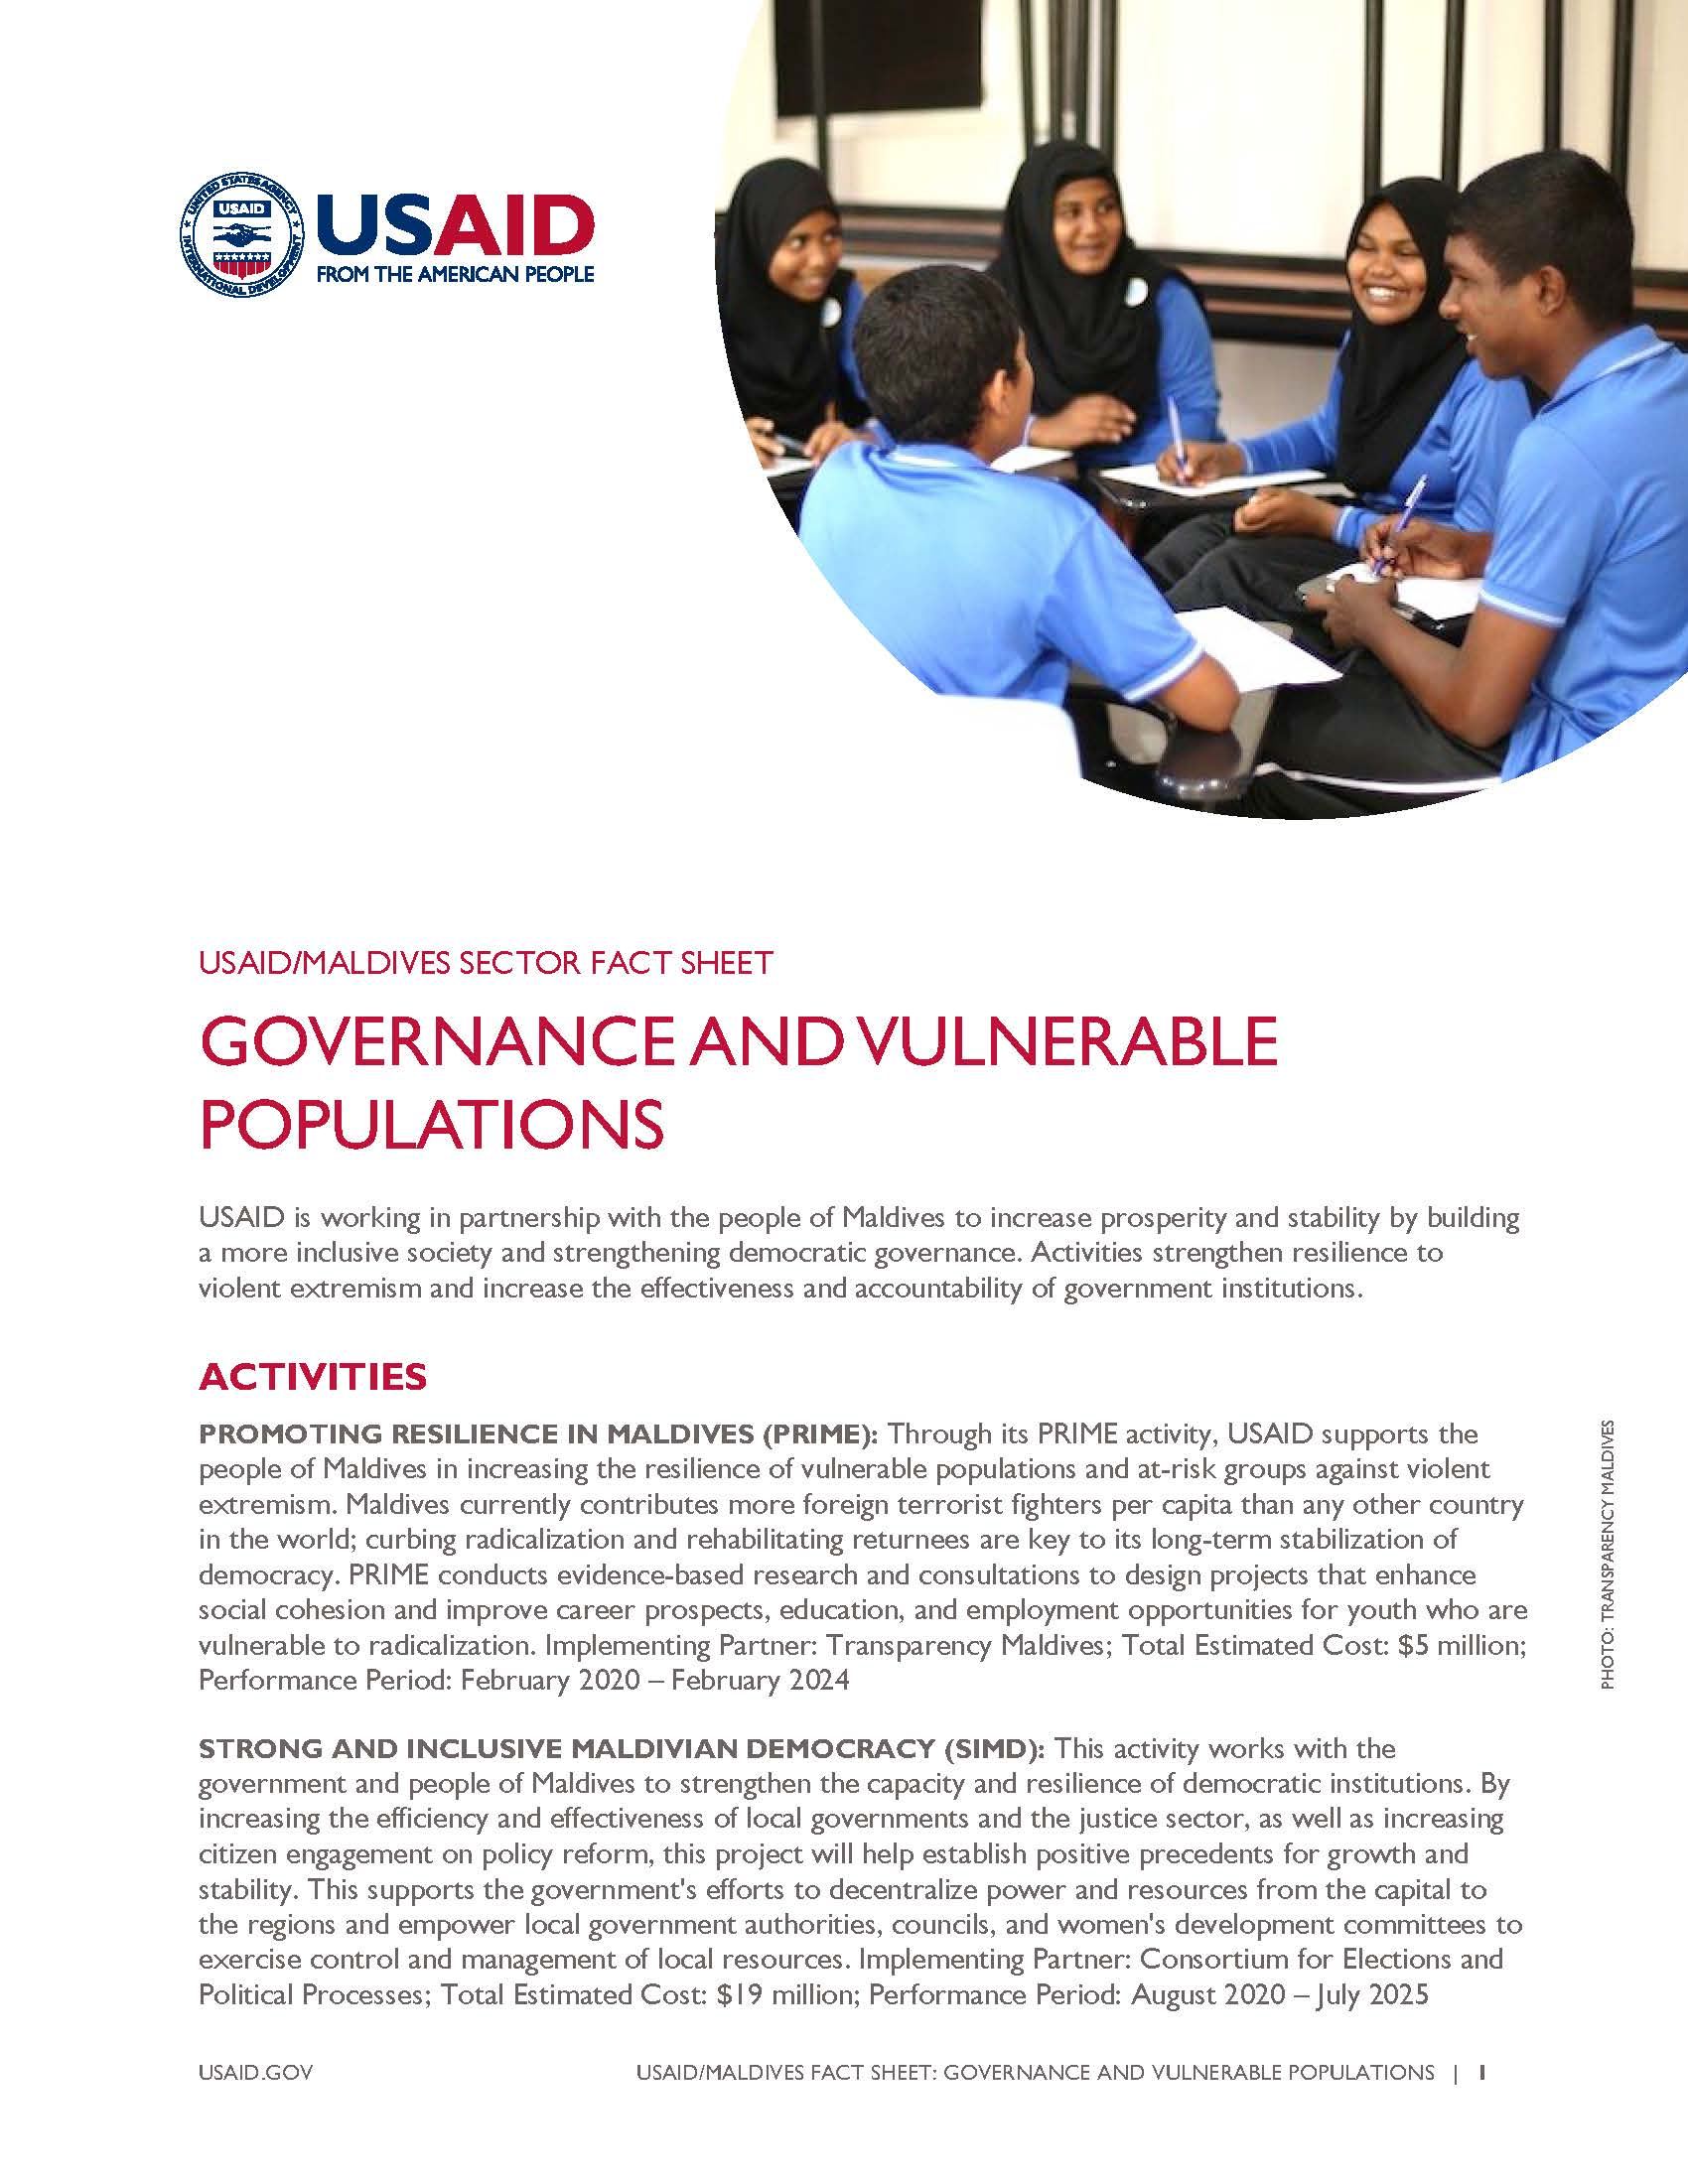 USAID/Maldives Fact Sheet: Governance and Vulnerable Populations